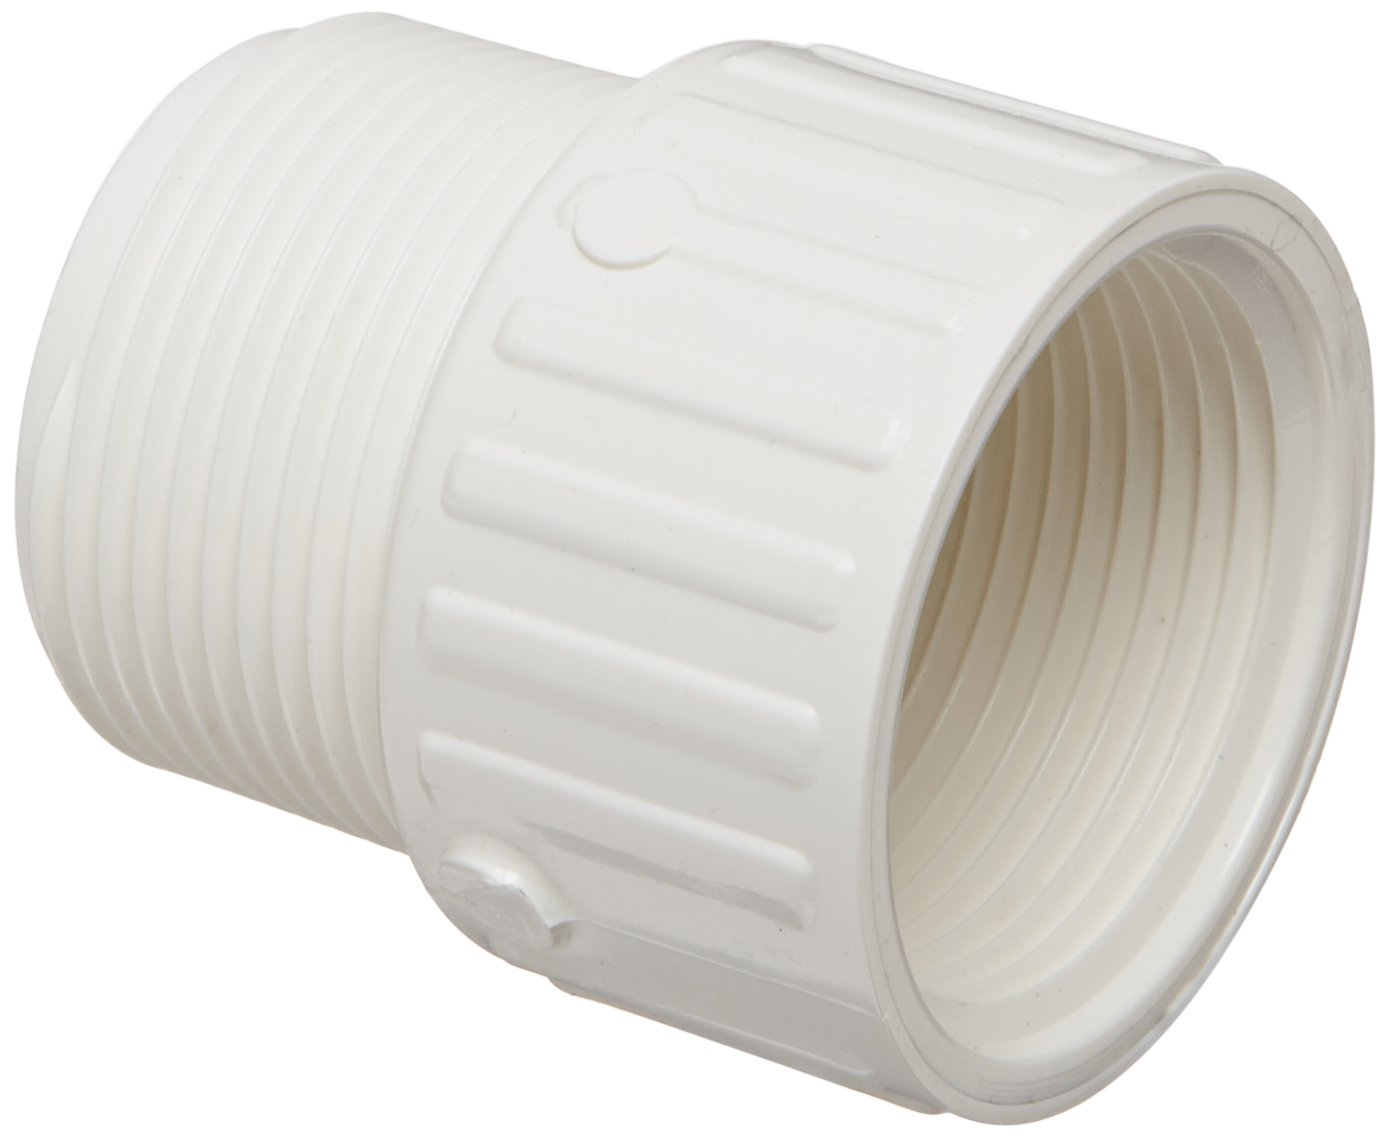 Adapter Schedule 40 3//8 NPT Male x 1//2 NPT Female Spears 446 Series PVC Pipe Fitting